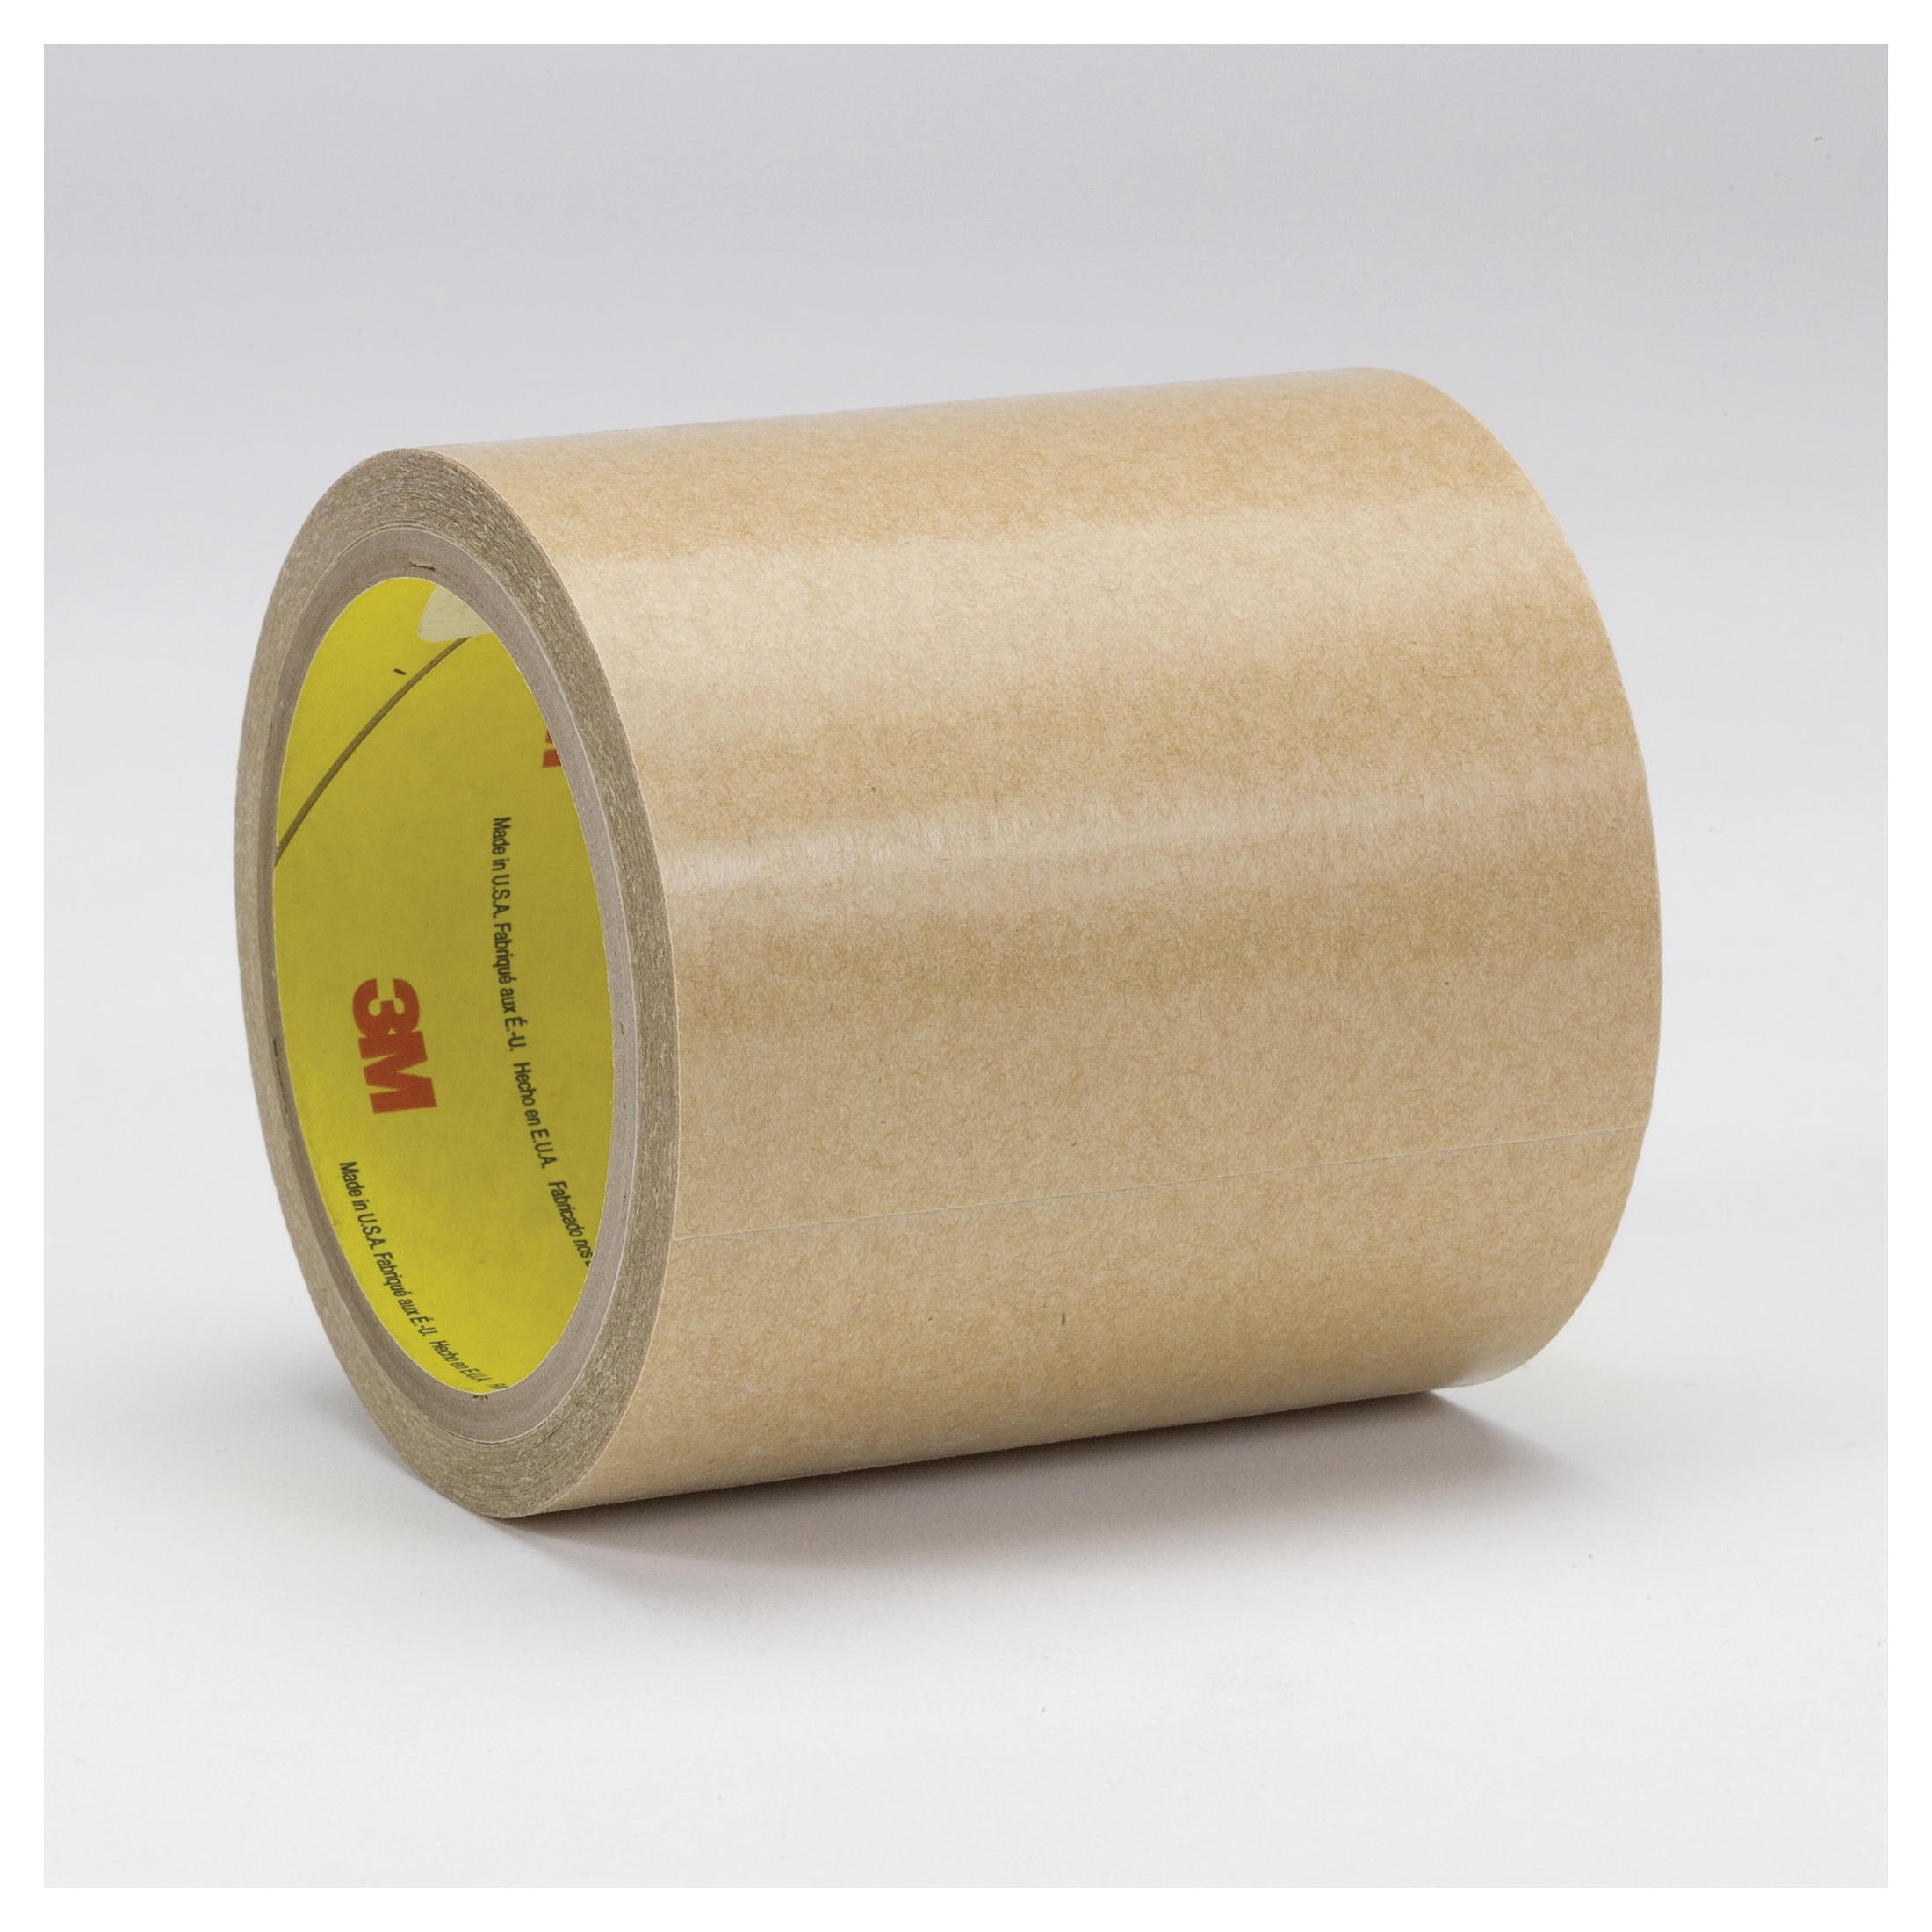 3M™ 021200-05457 950 General Purpose Adhesive Transfer Tape, 3 in W x 60 yd Roll L, 8.5 mil THK, Clear